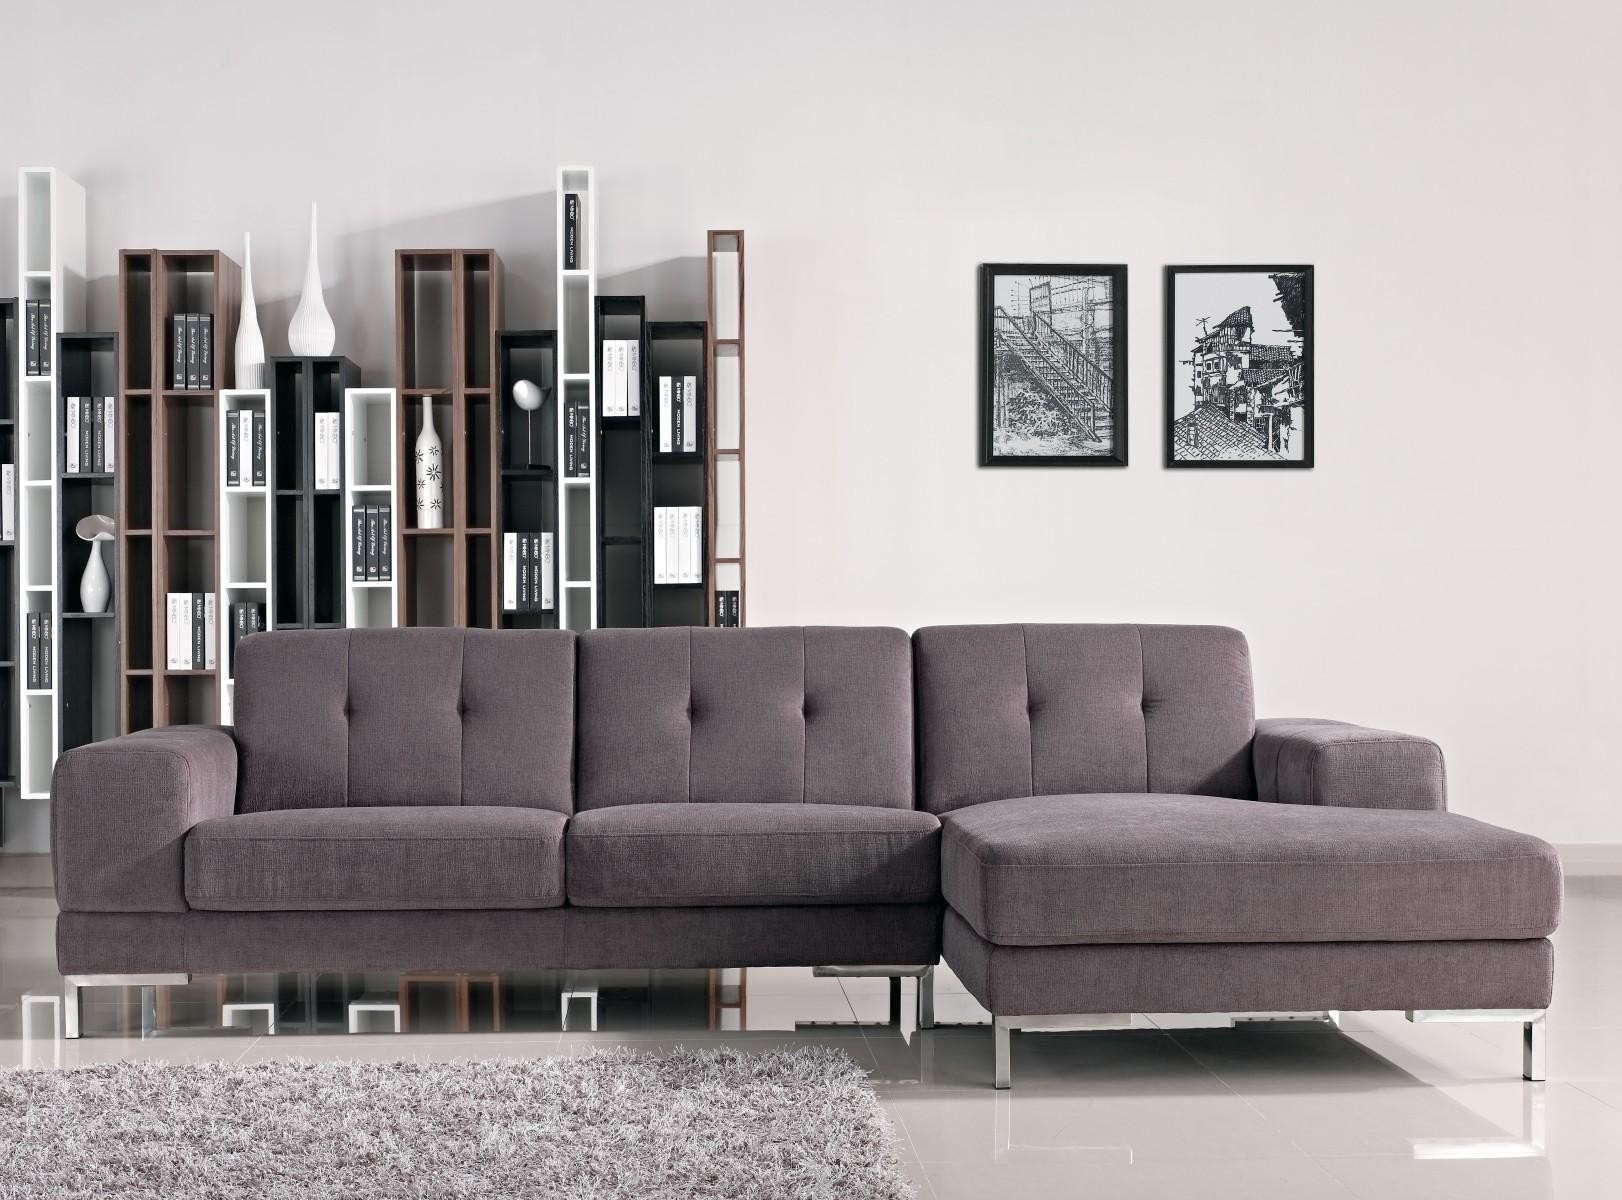 L Shape Gray Fabric Sectional Sofa from NOVA interiors